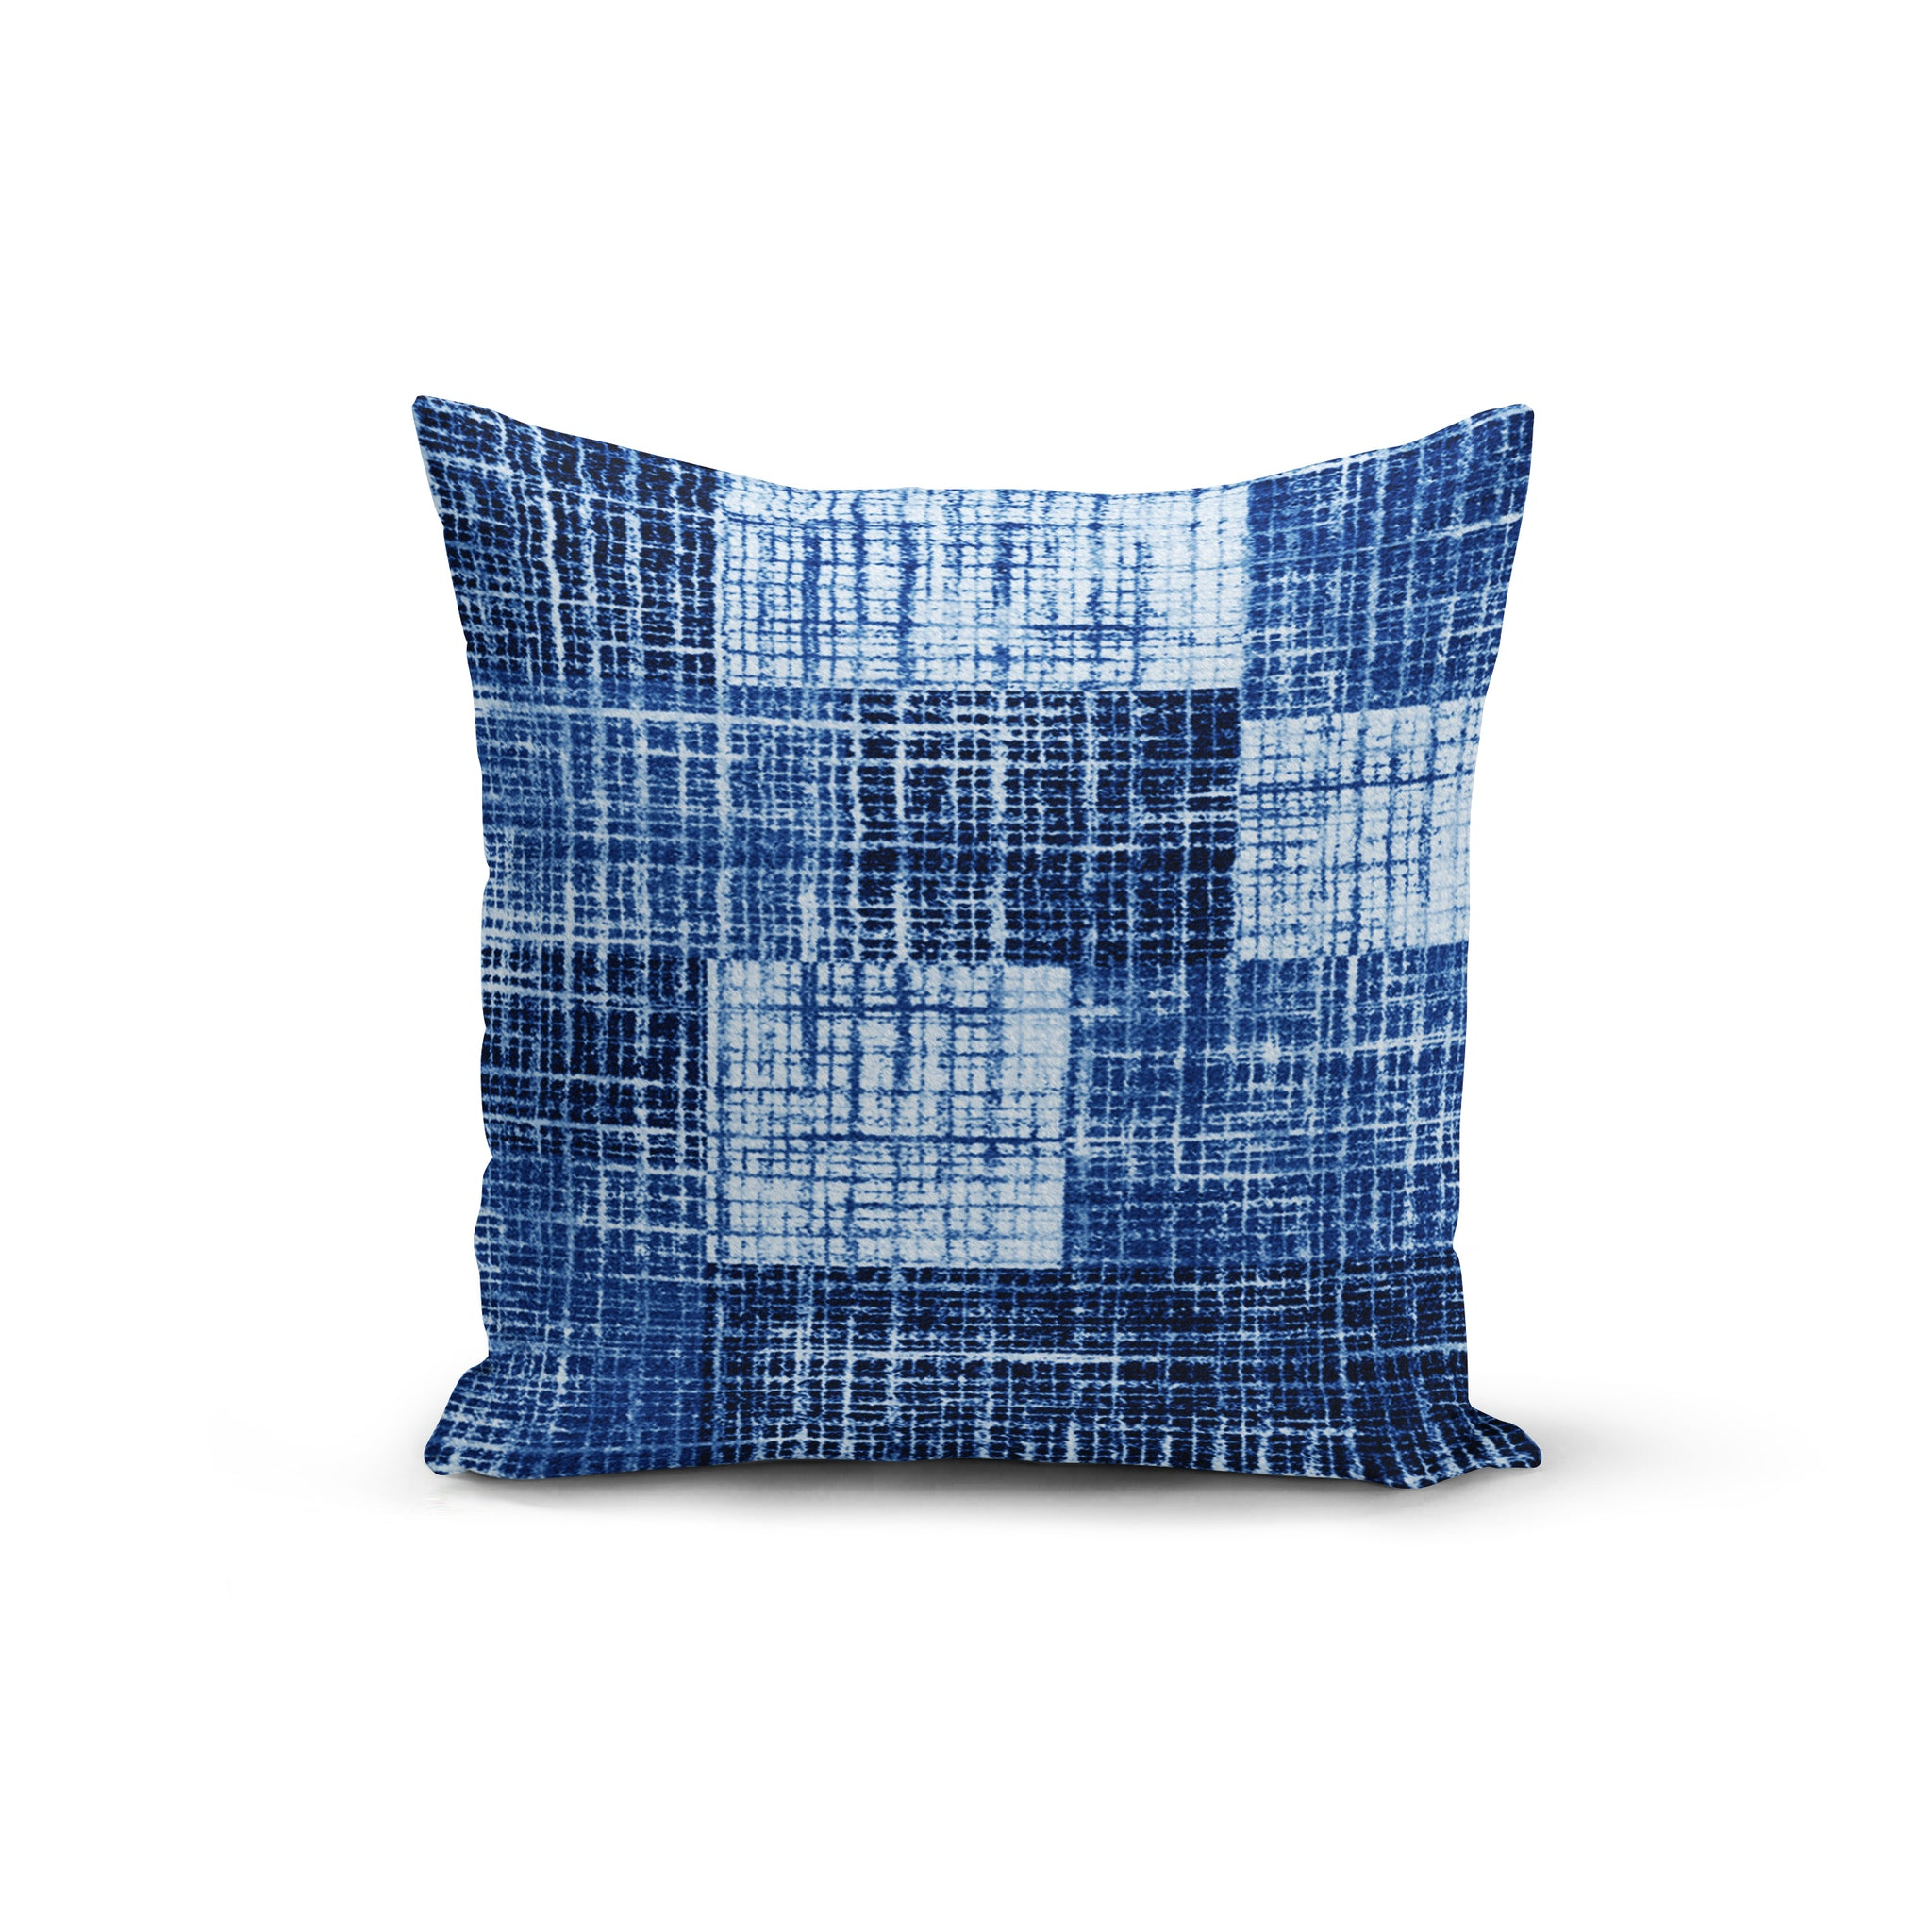 Blue Textured Throw Pillows